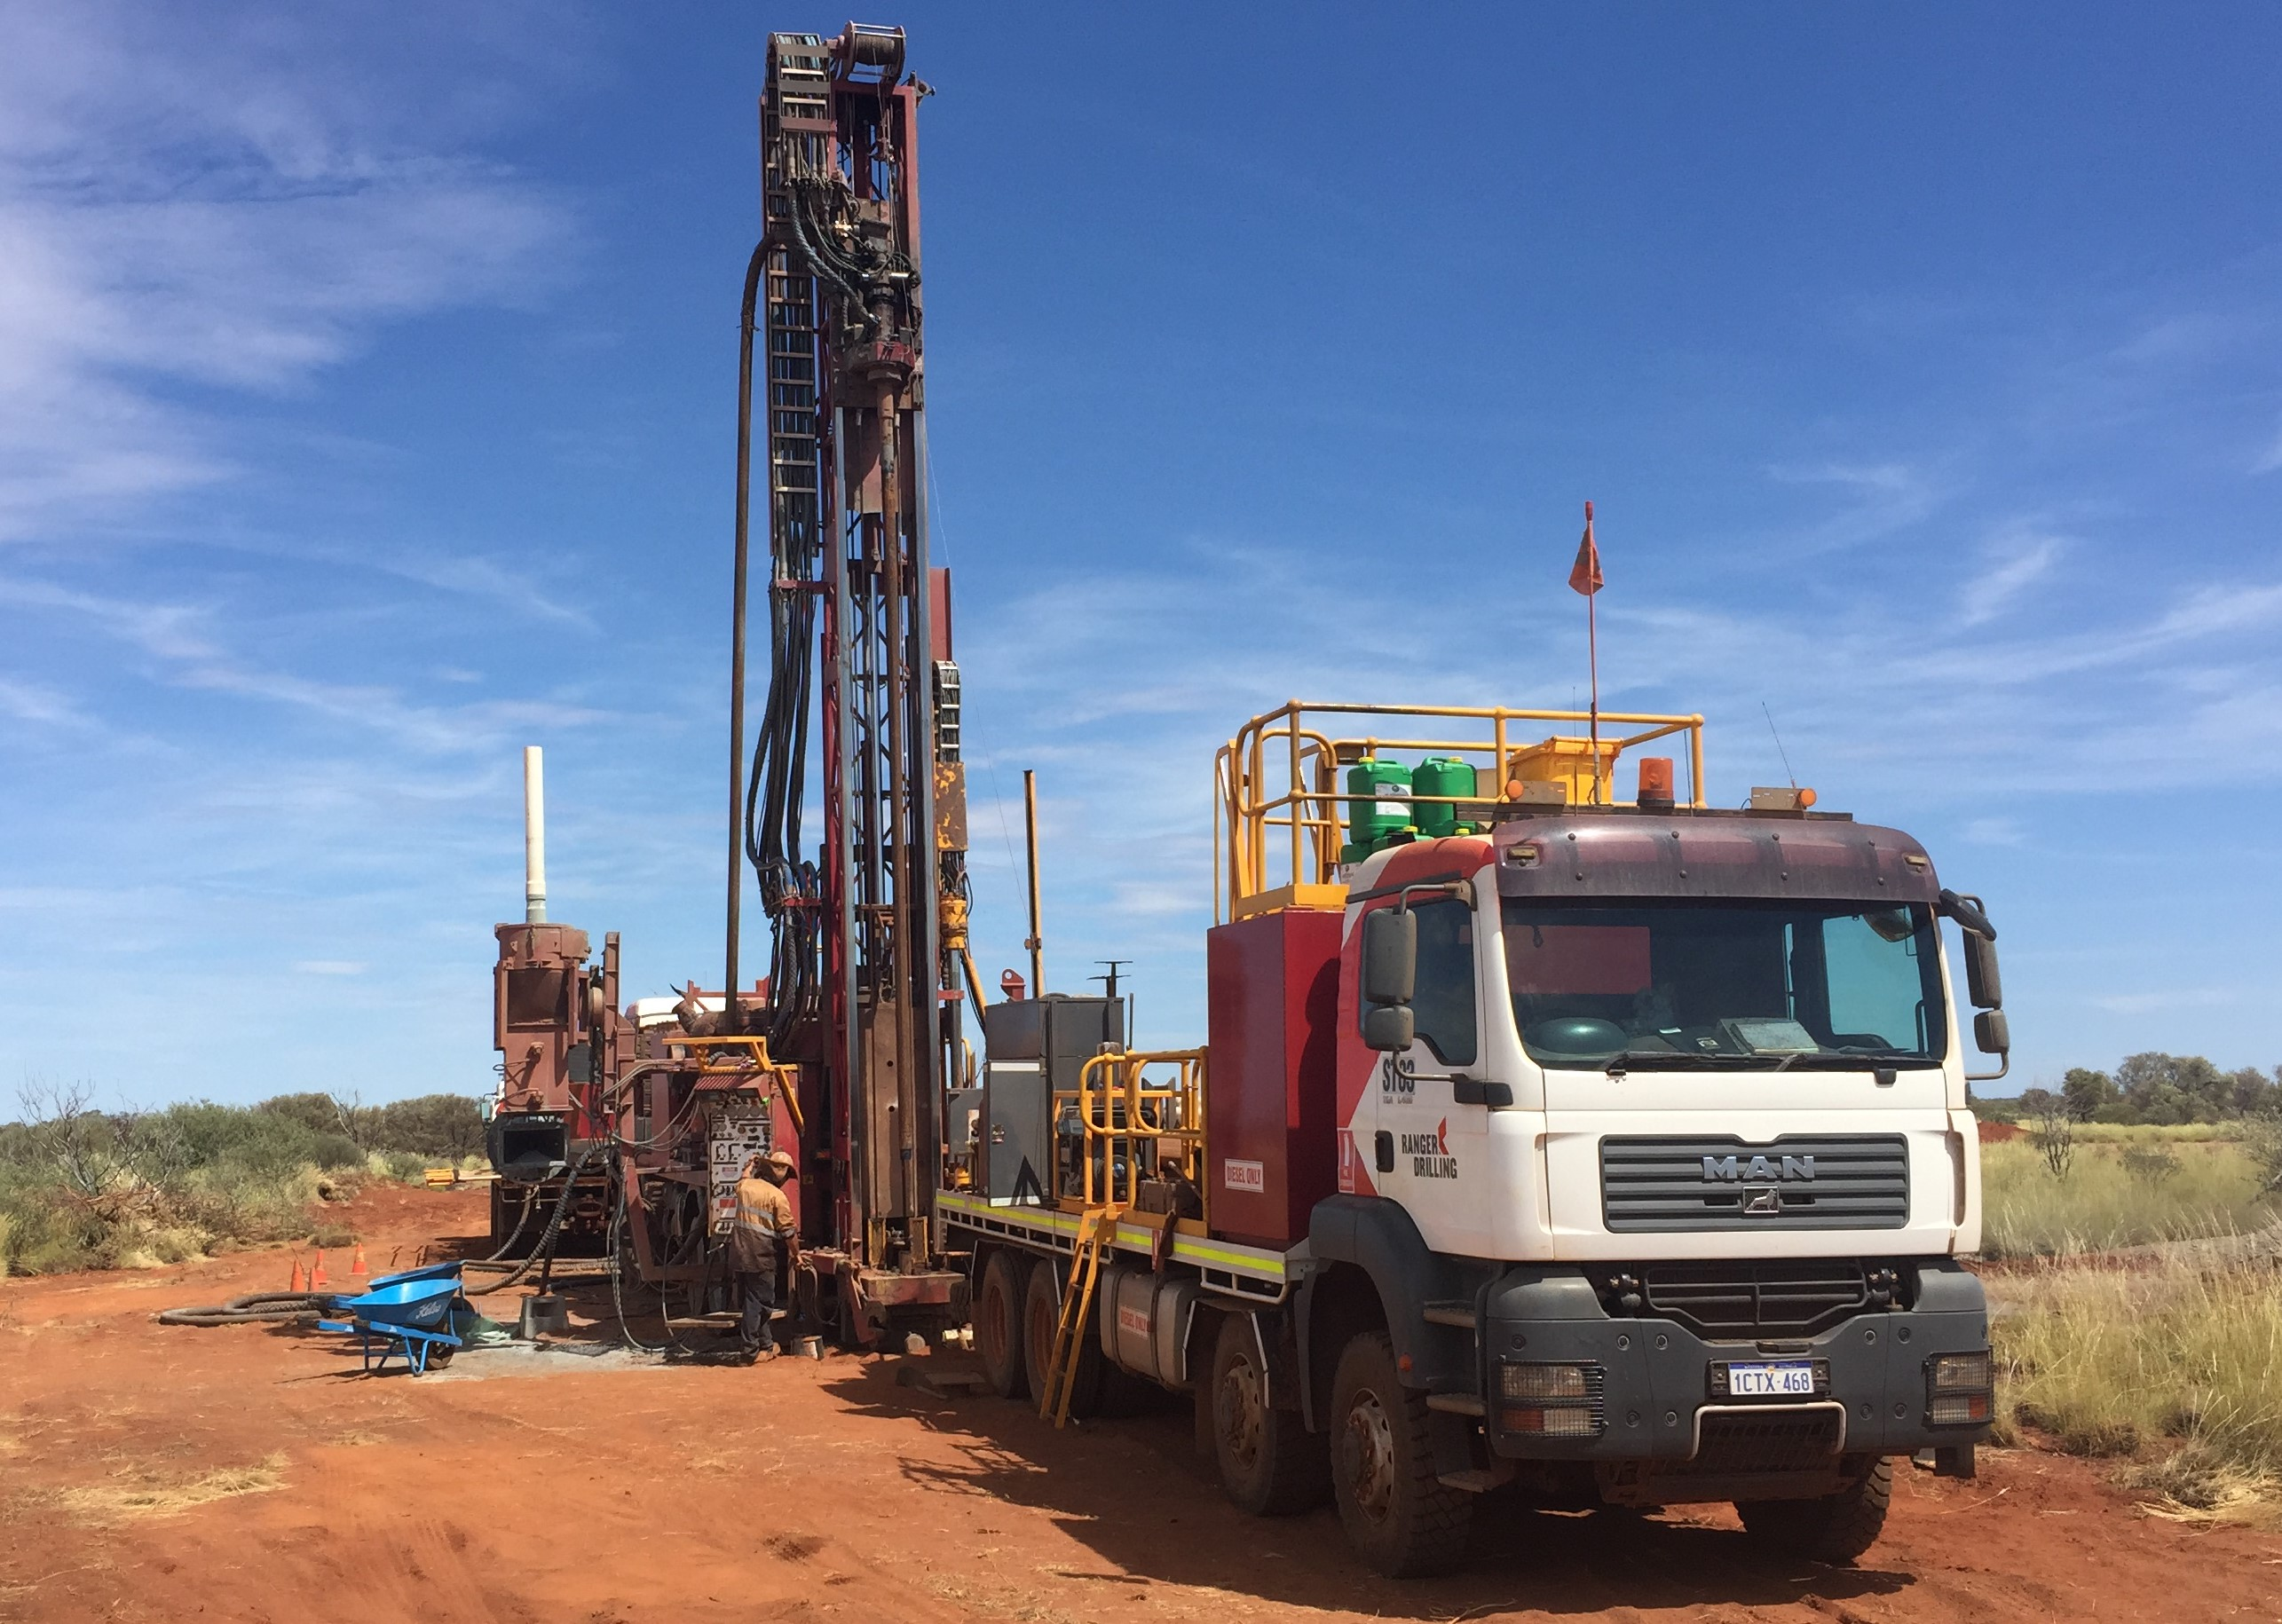 Canaccord sets 18c target for Capricorn, as it approaches decision on new 100kozpa gold mine